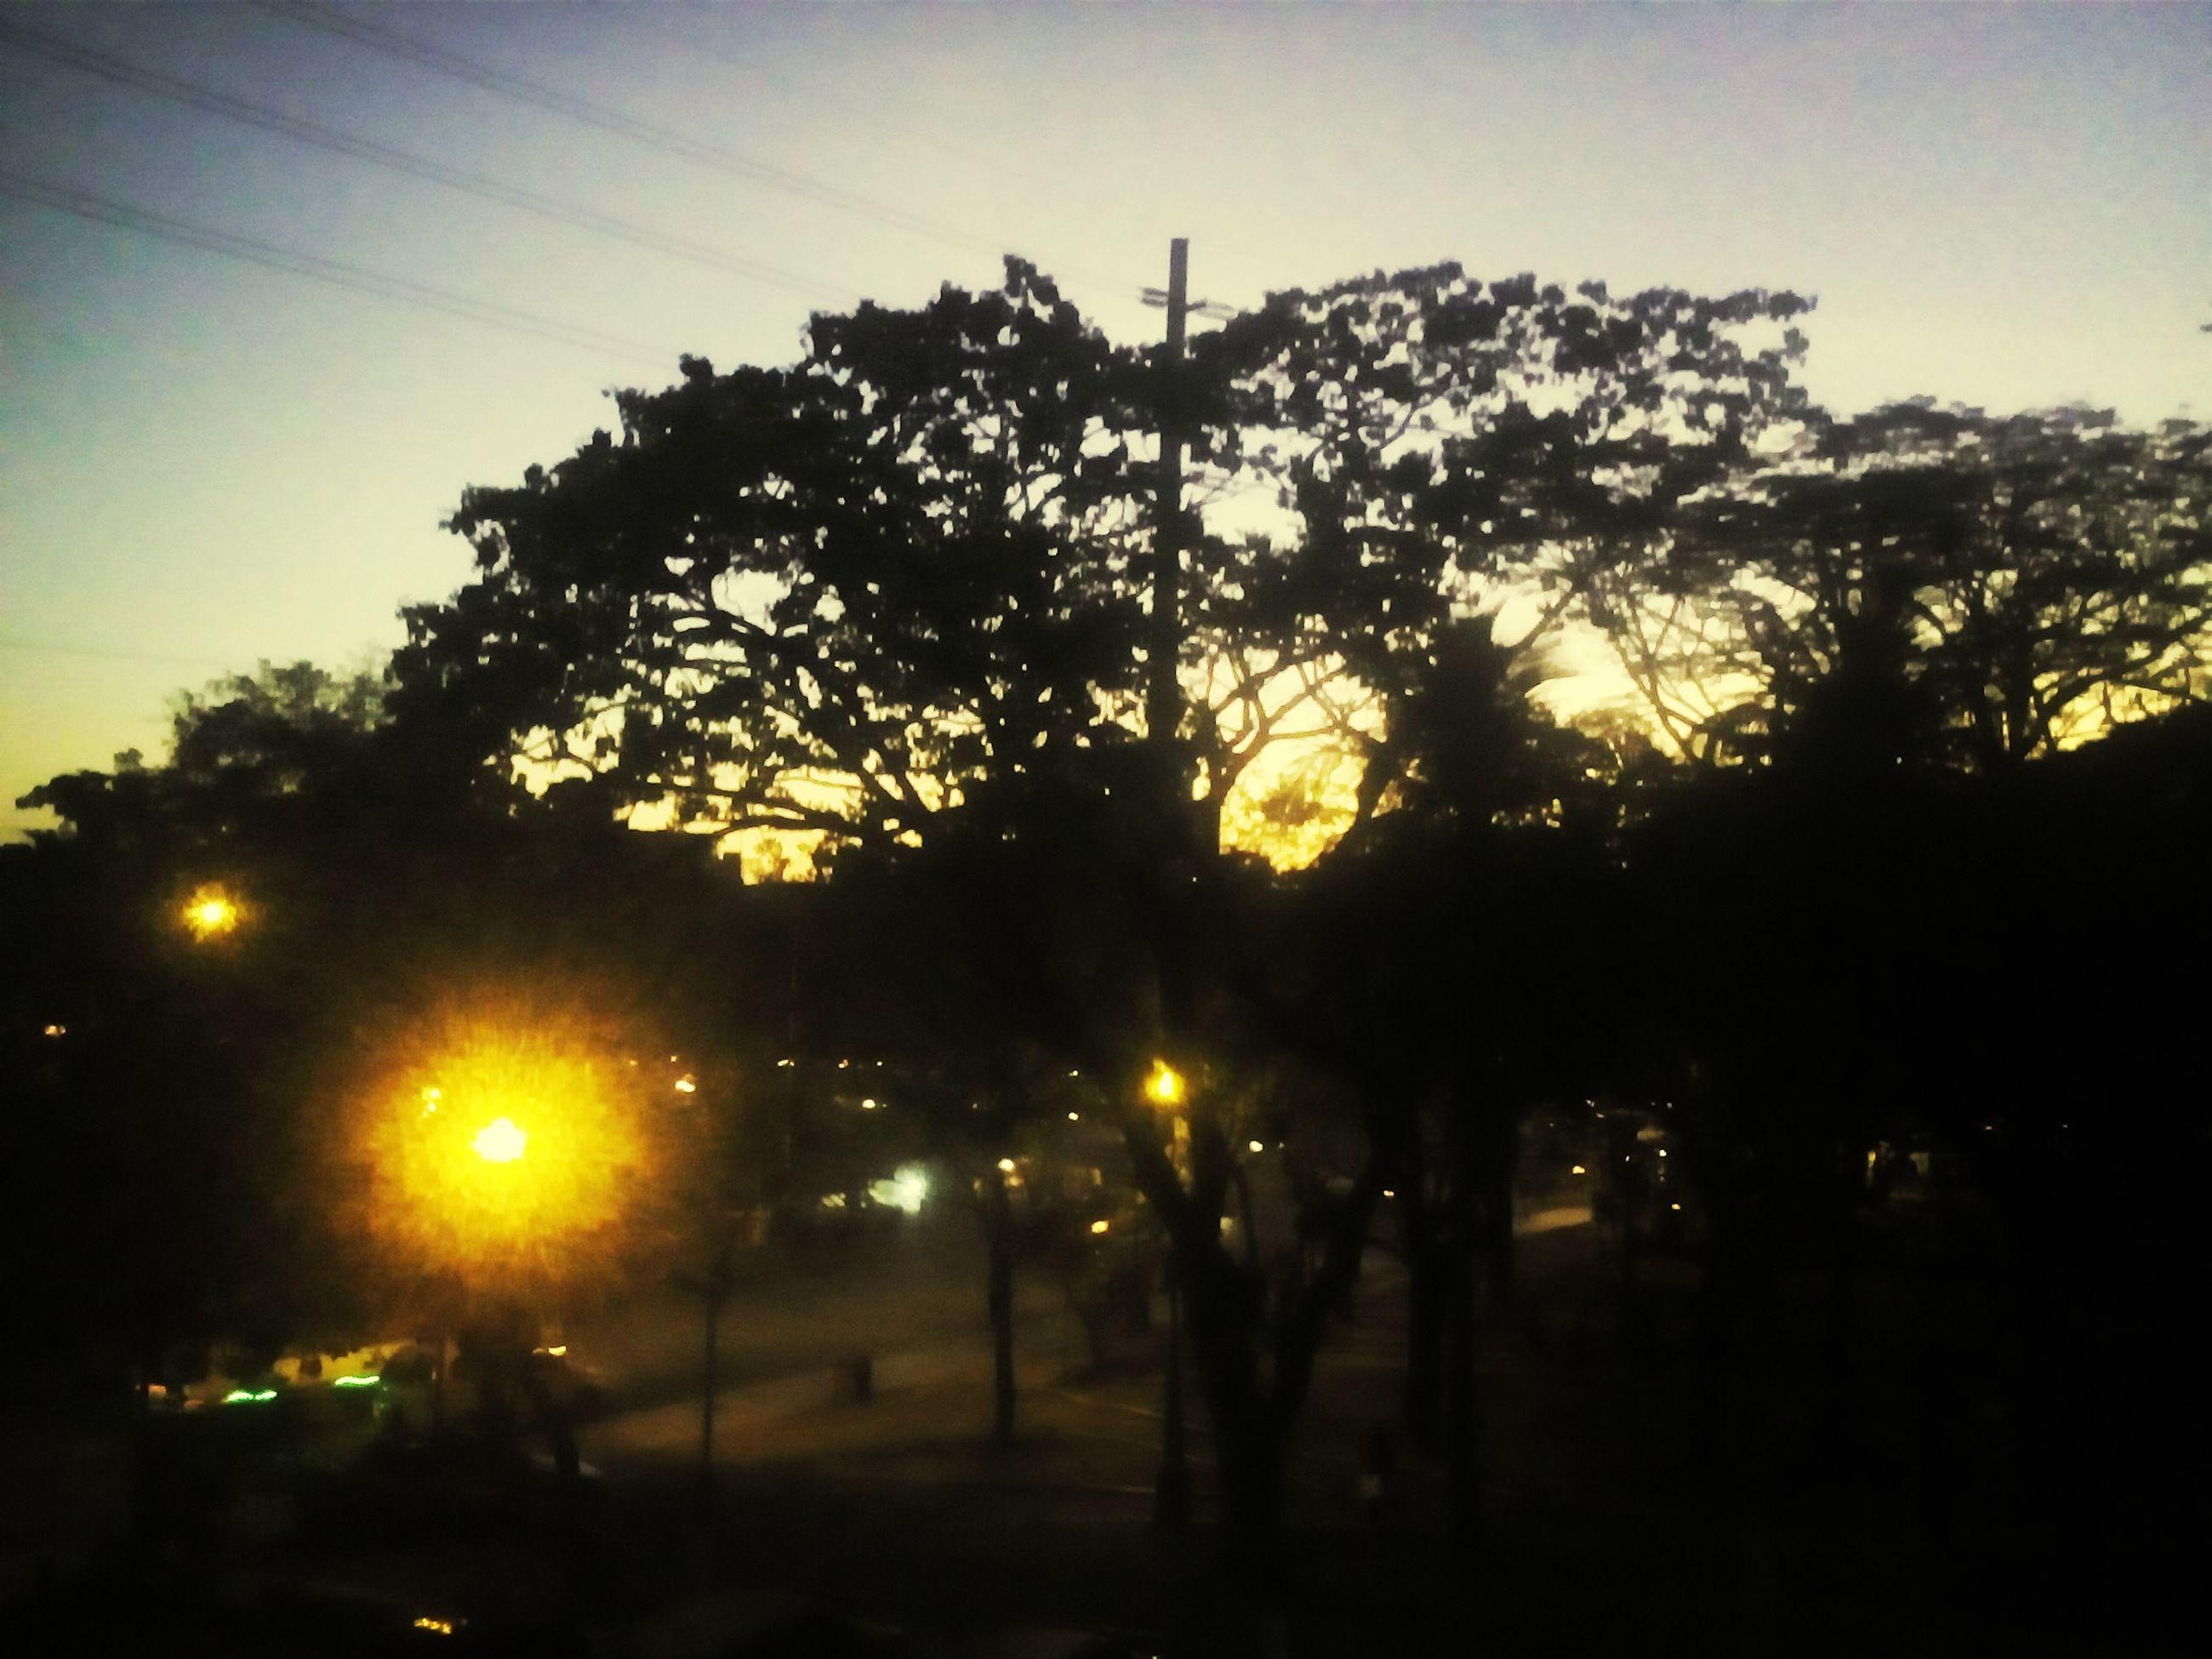 tree, silhouette, sunset, tranquility, sky, nature, tranquil scene, dusk, beauty in nature, illuminated, growth, scenics, street light, dark, outdoors, no people, branch, clear sky, road, outline